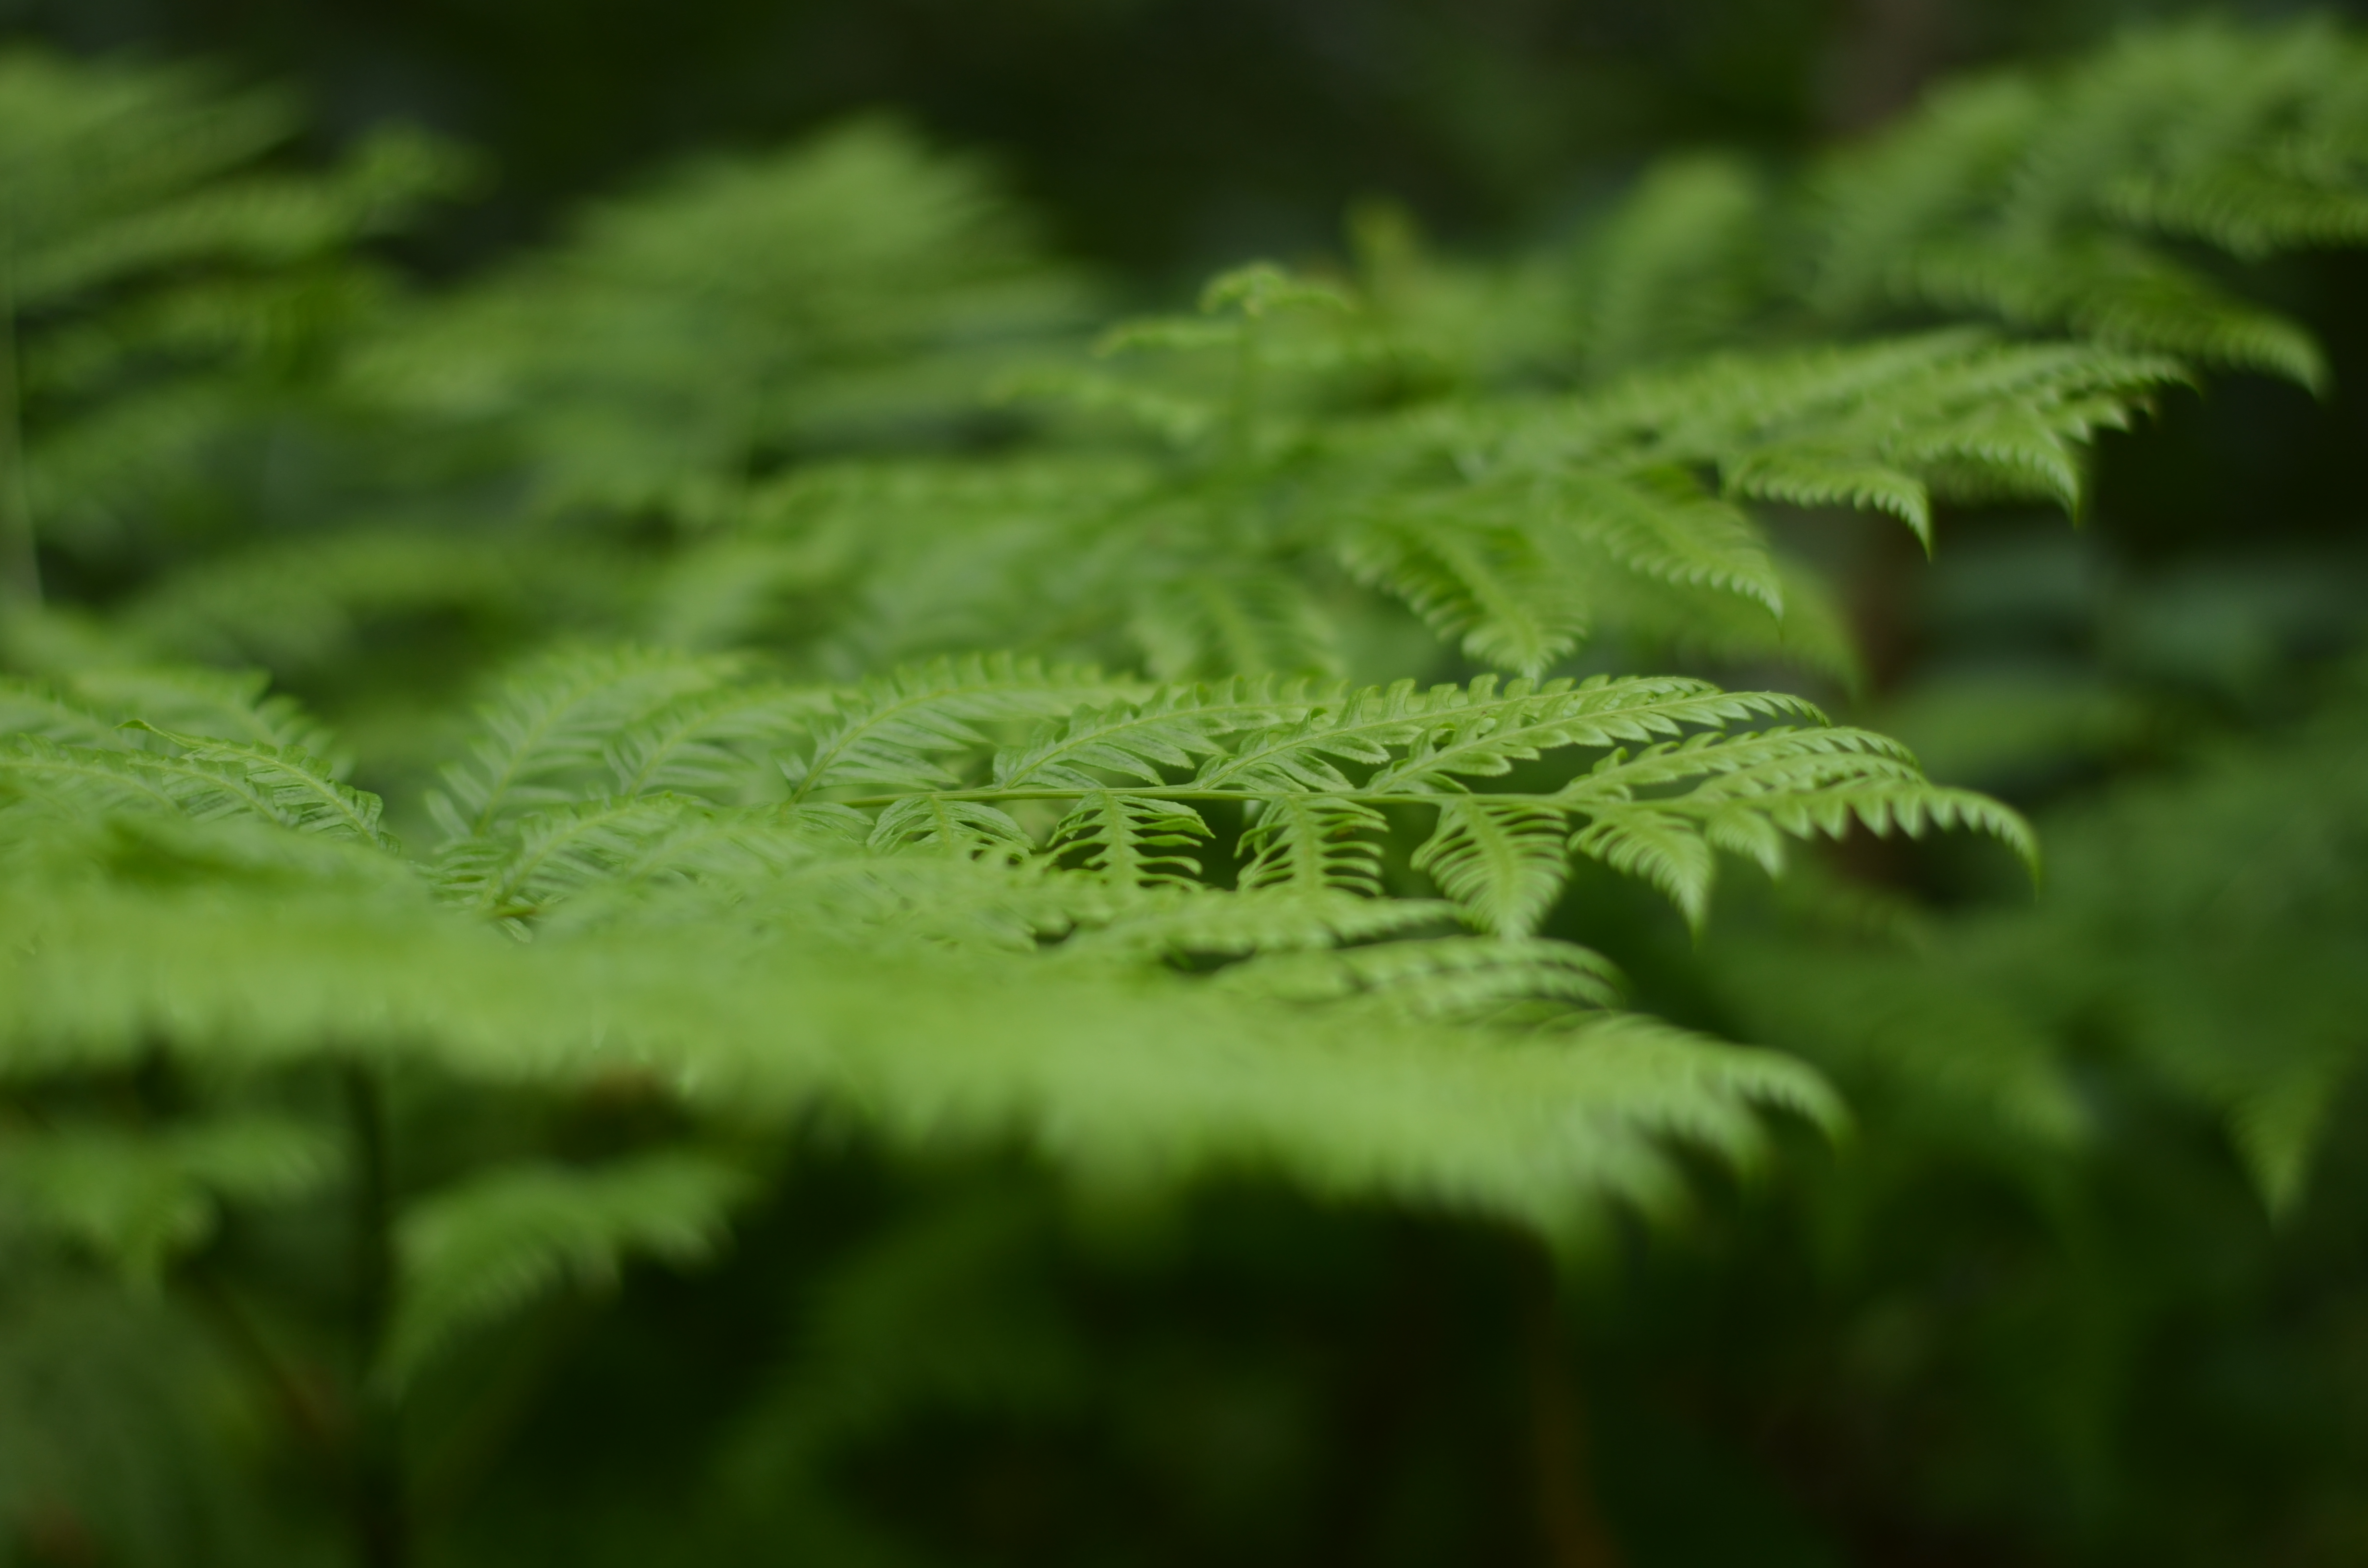 Plants, Aroma, Green, Leave, HQ Photo